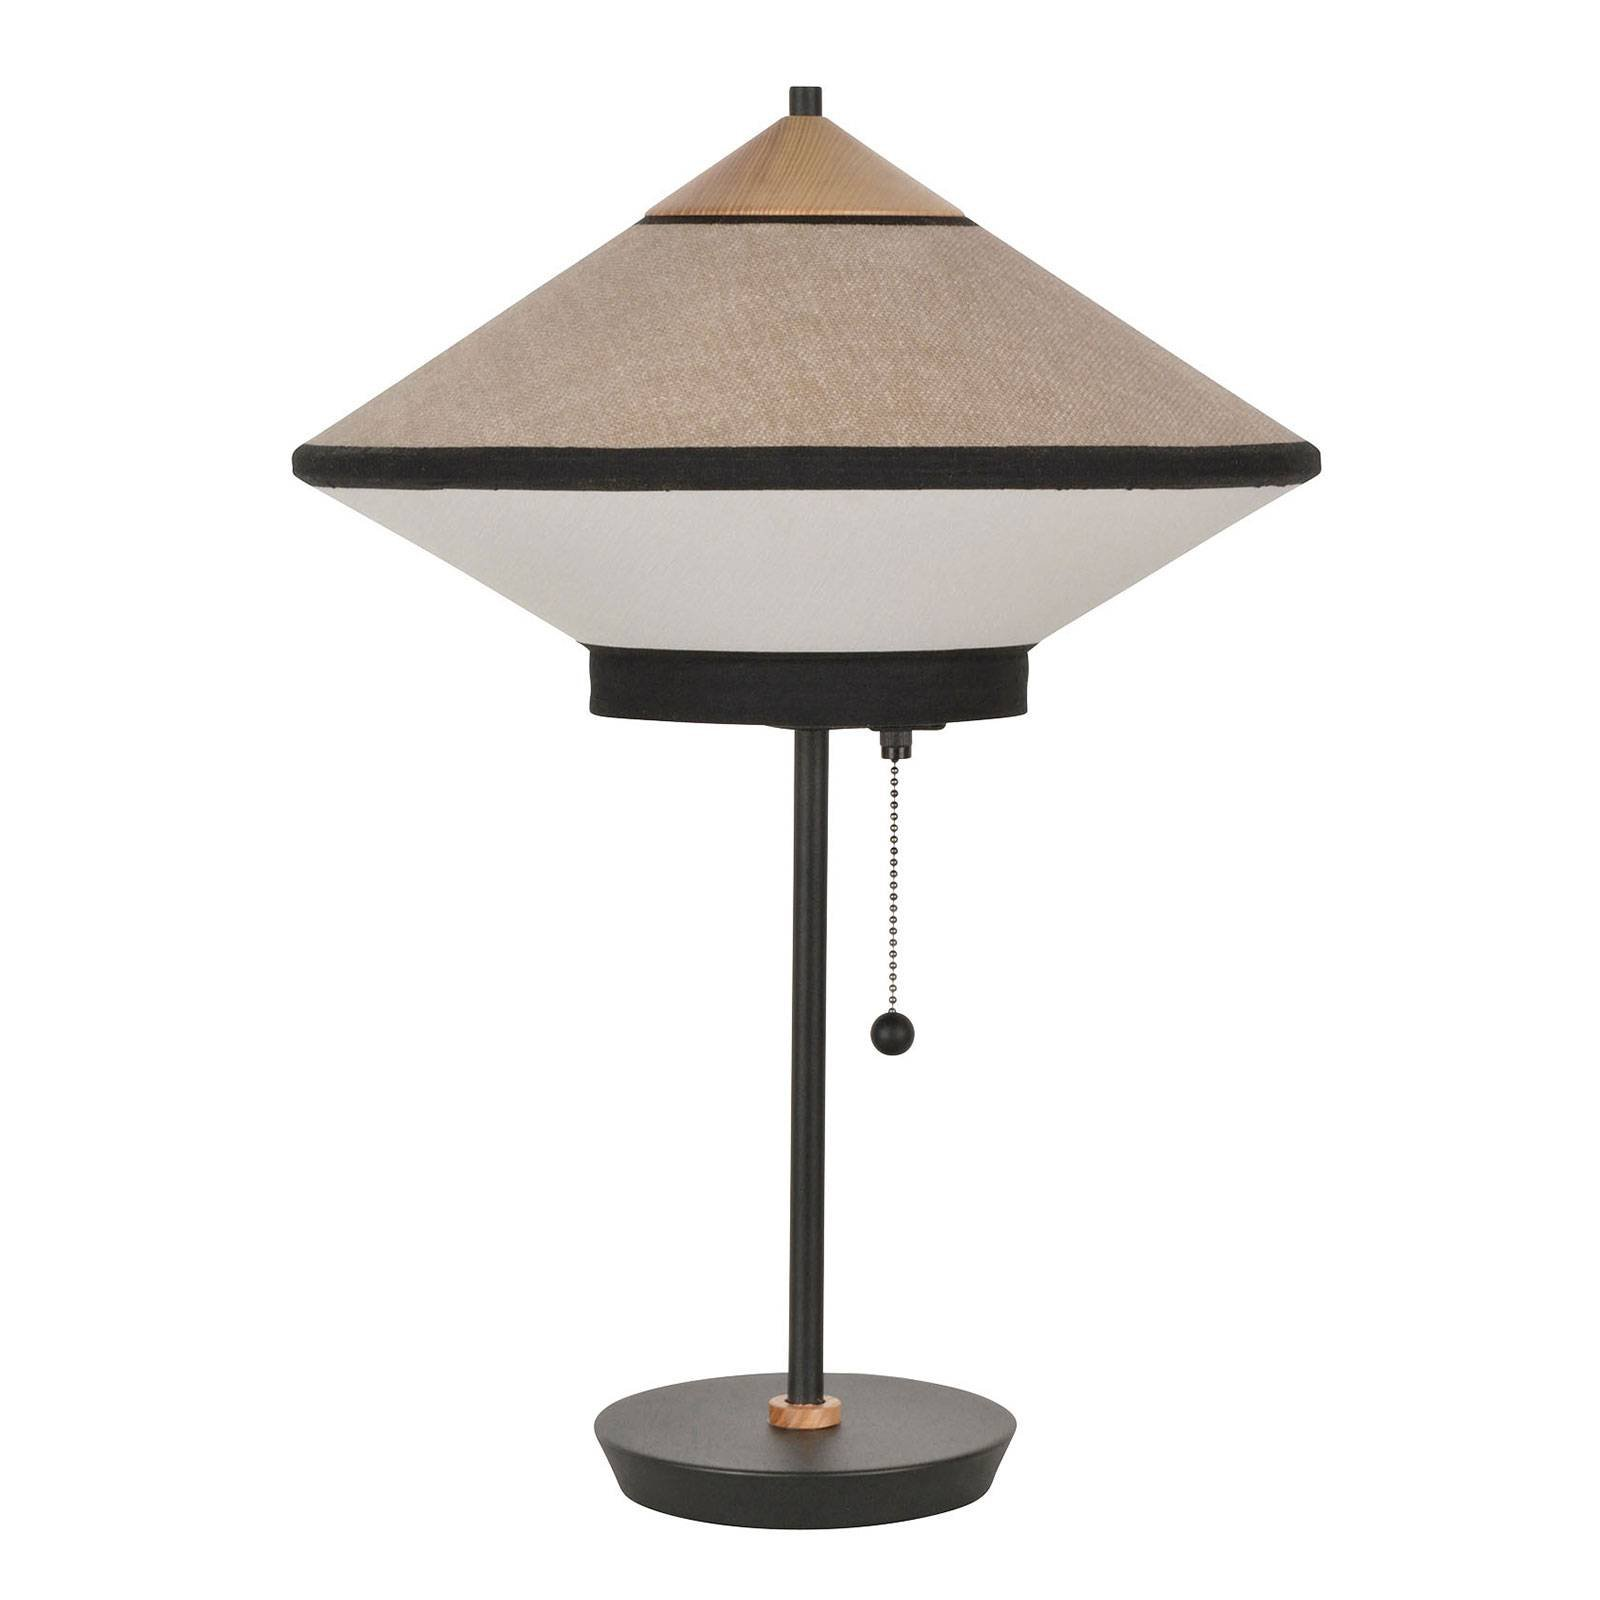 Forestier Cymbal S bordlampe, natur